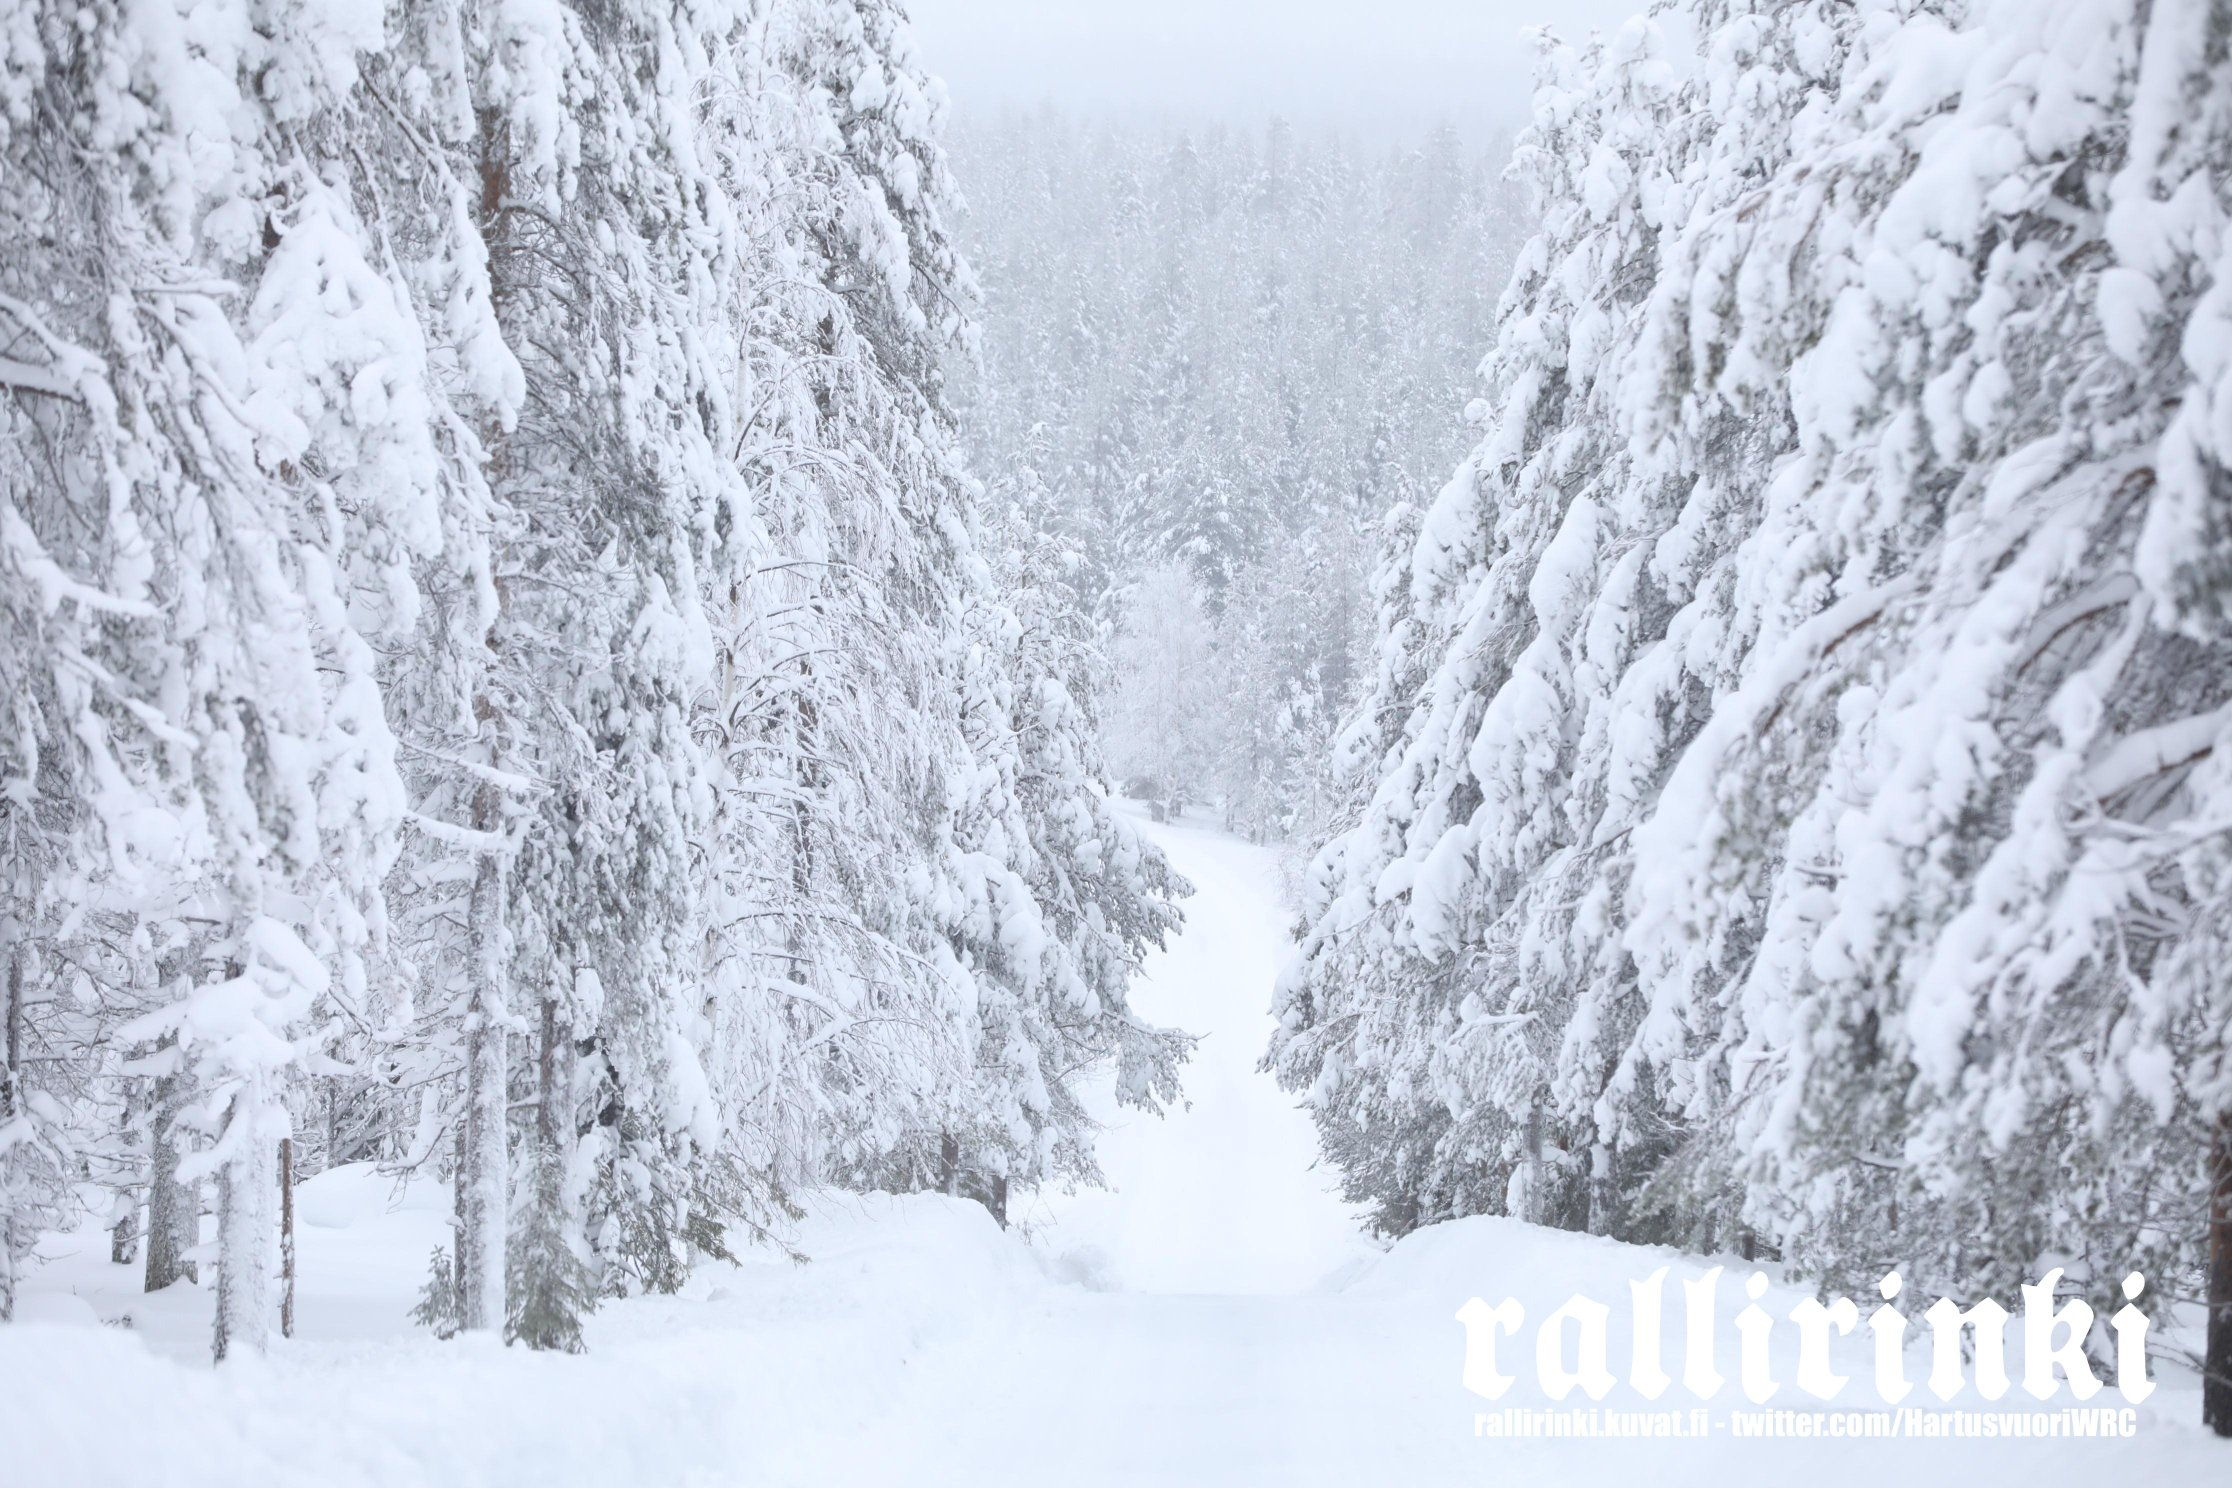 WRC: Arctic Rally Finland - Powered by CapitalBox [26-28 Febrero] Eu_LiE1XMAgN04L?format=jpg&name=4096x4096